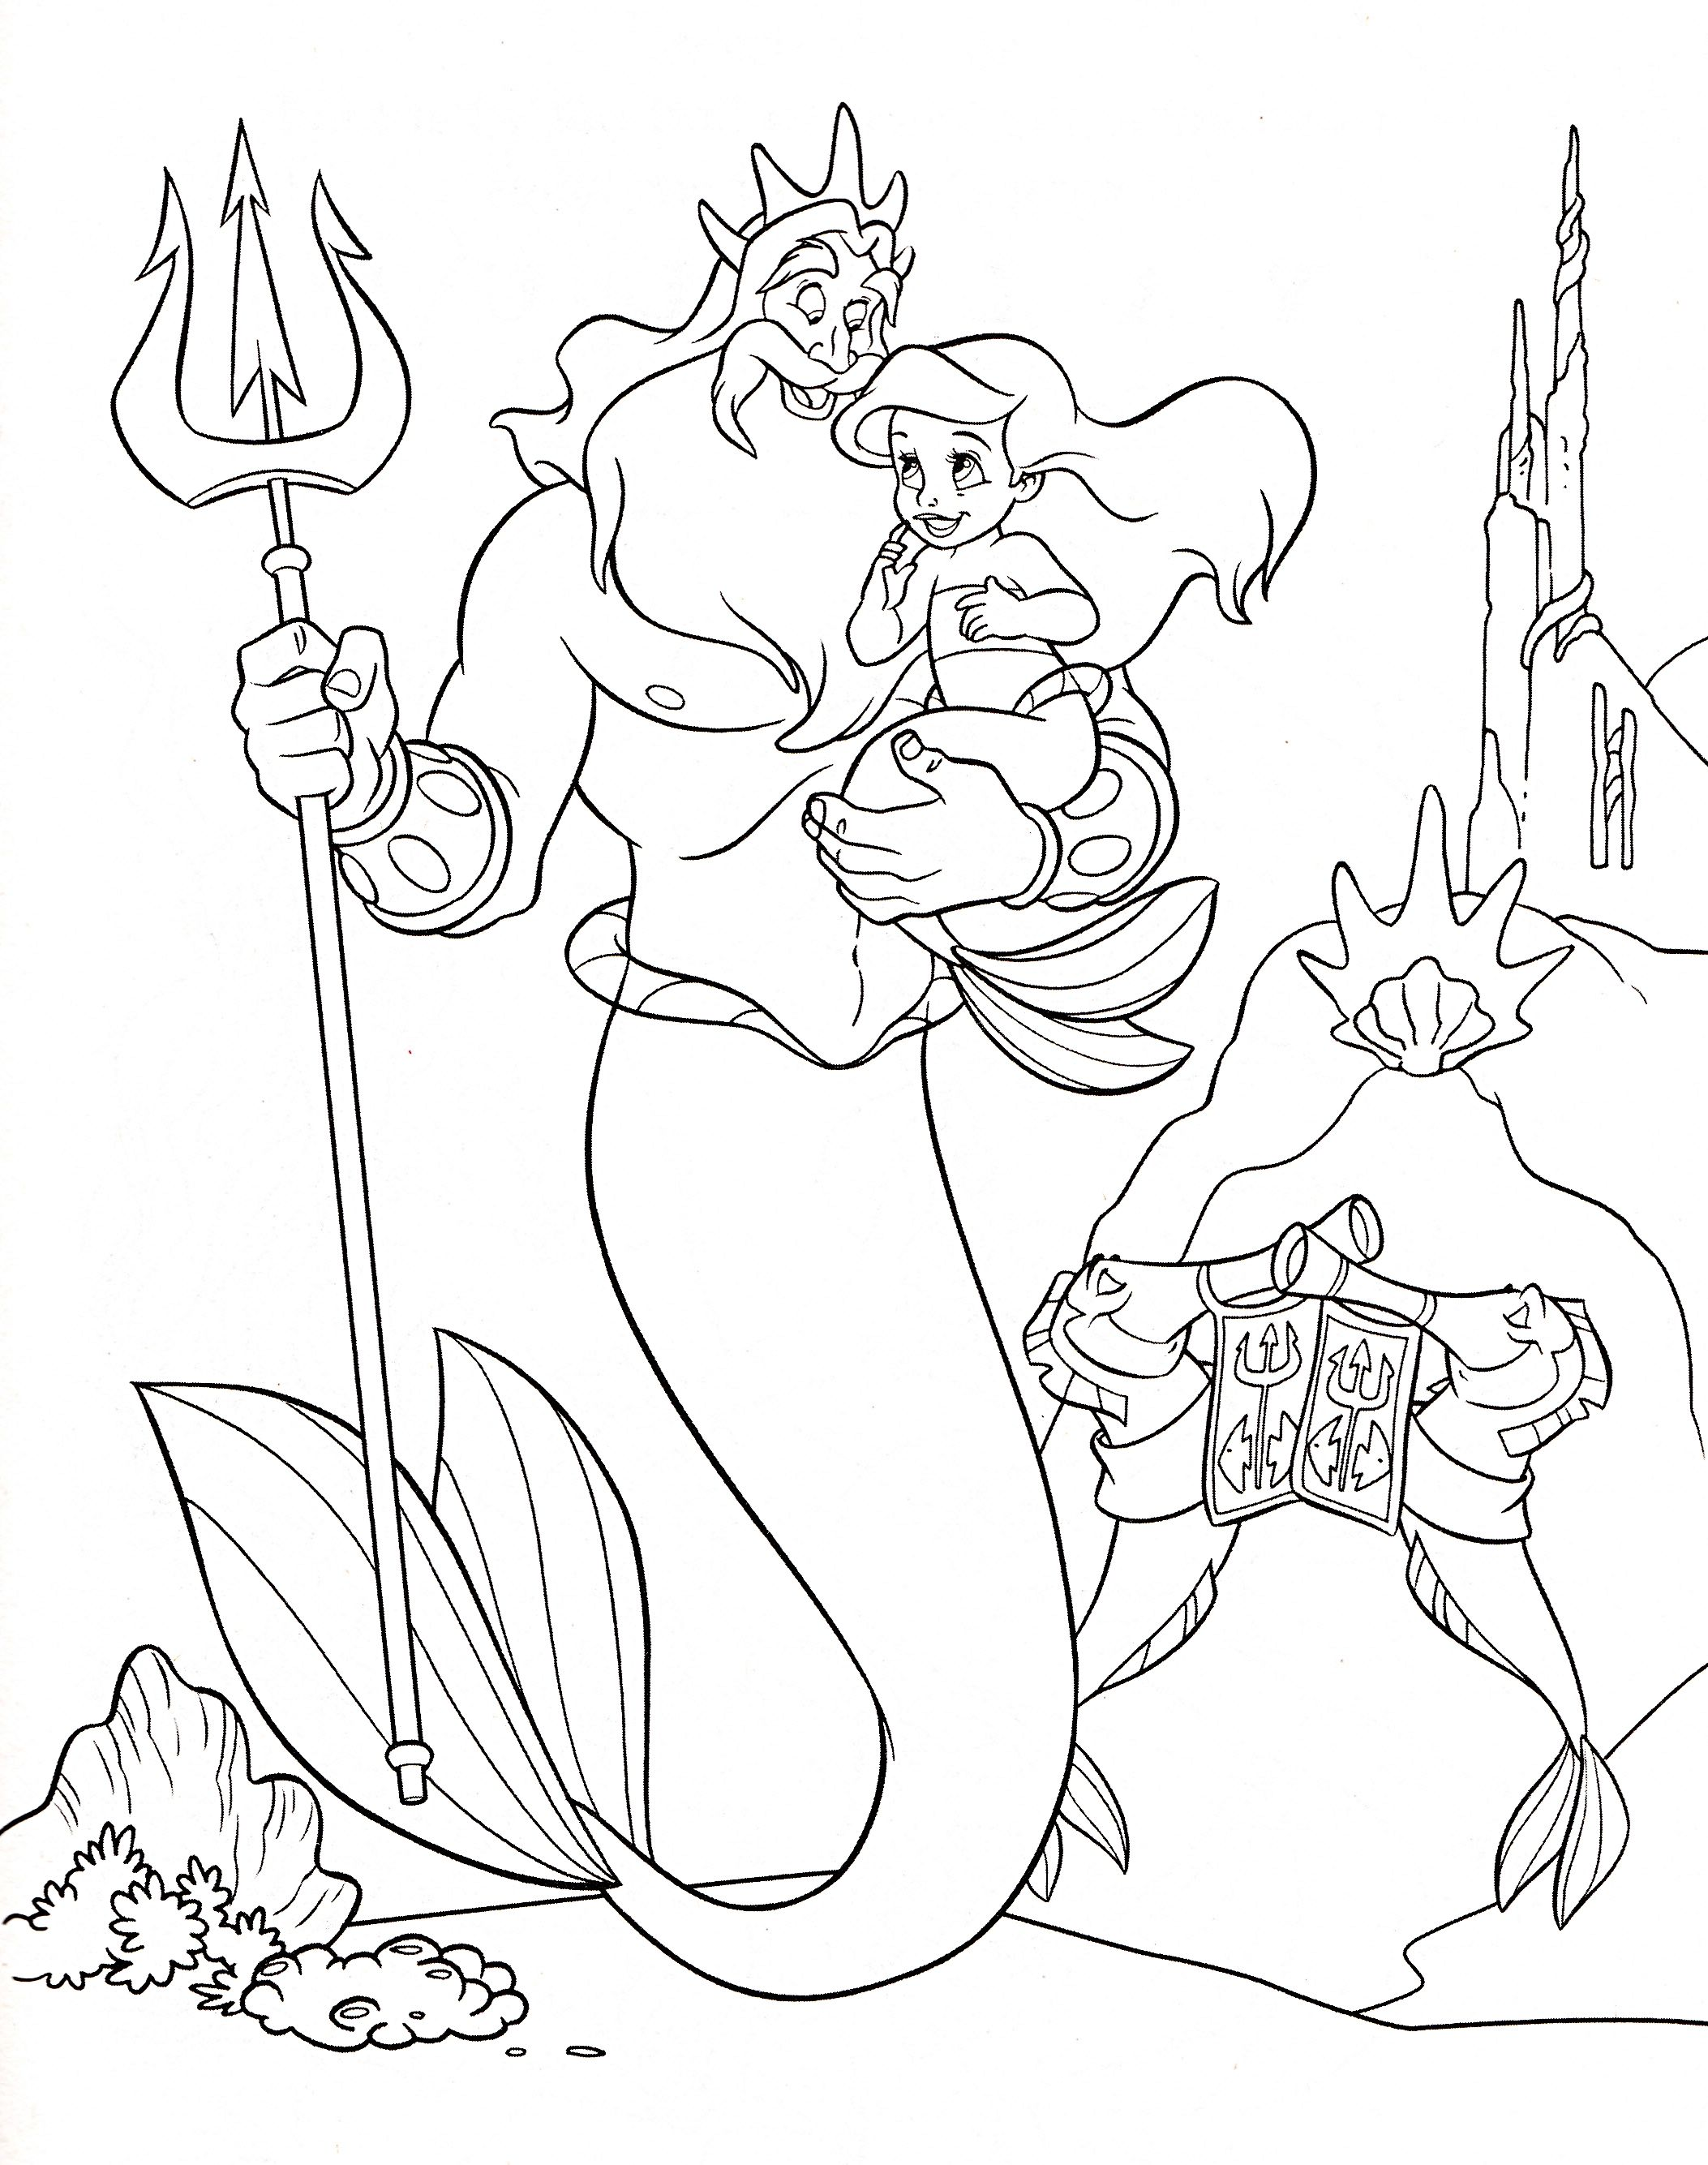 Princess lillifee coloring pages - Walt Disney Coloring Page Of King Triton And Princess Ariel From The Little Mermaid Ariel S Beginning Hd Wallpaper And Background Photos Of Walt Disney